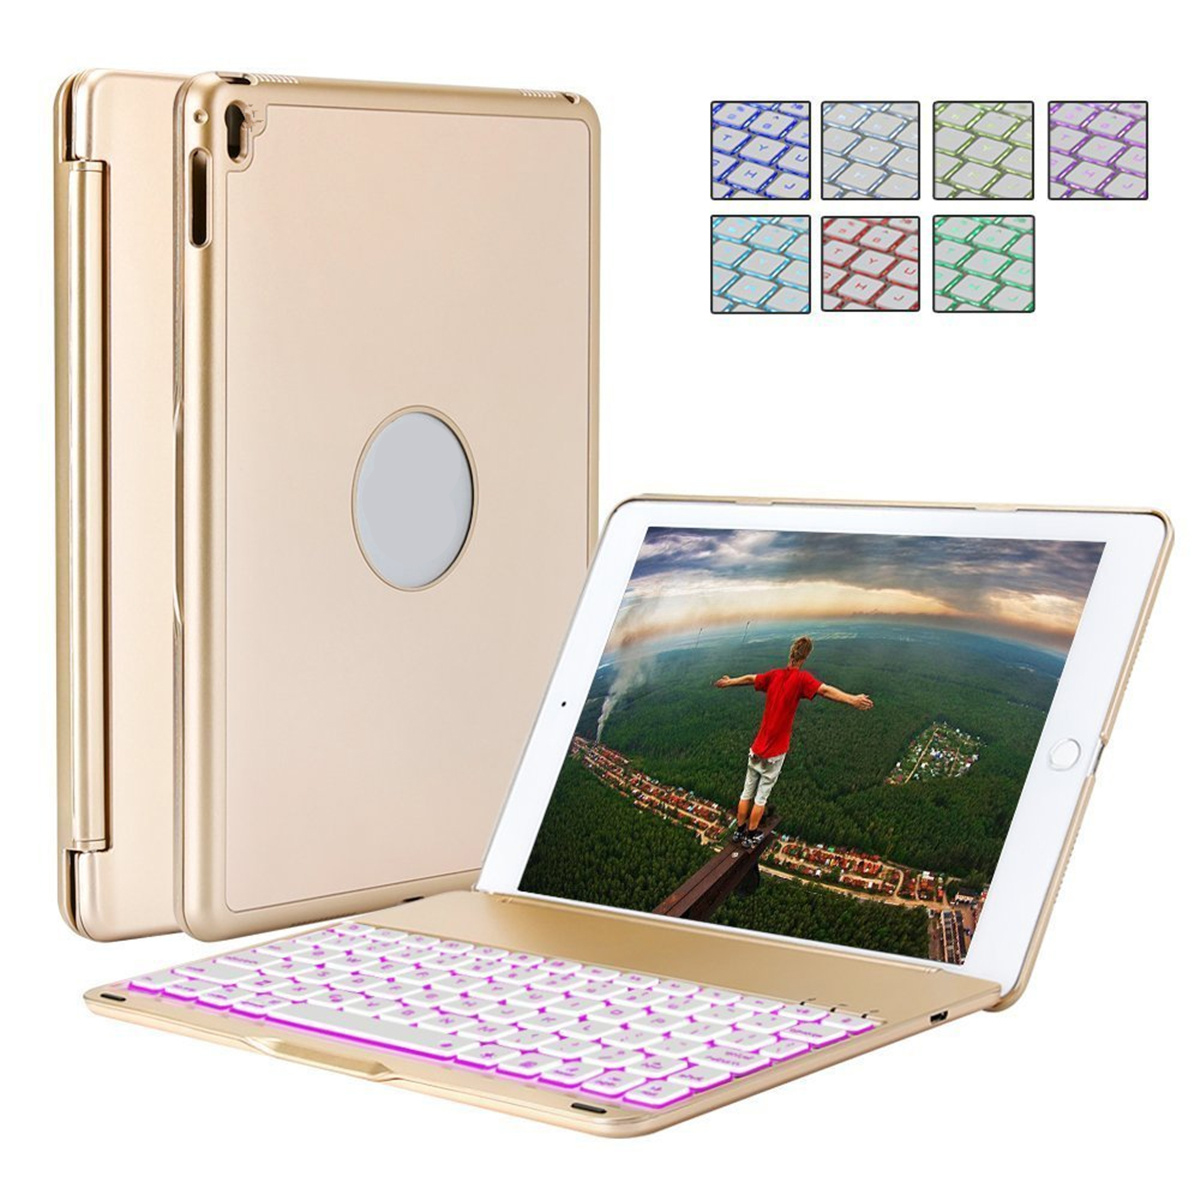 10.5inch Wireless Bluetooth Keyboard for iPad Pro 10.5/ iPad Air3 Colorful Backlit Gold